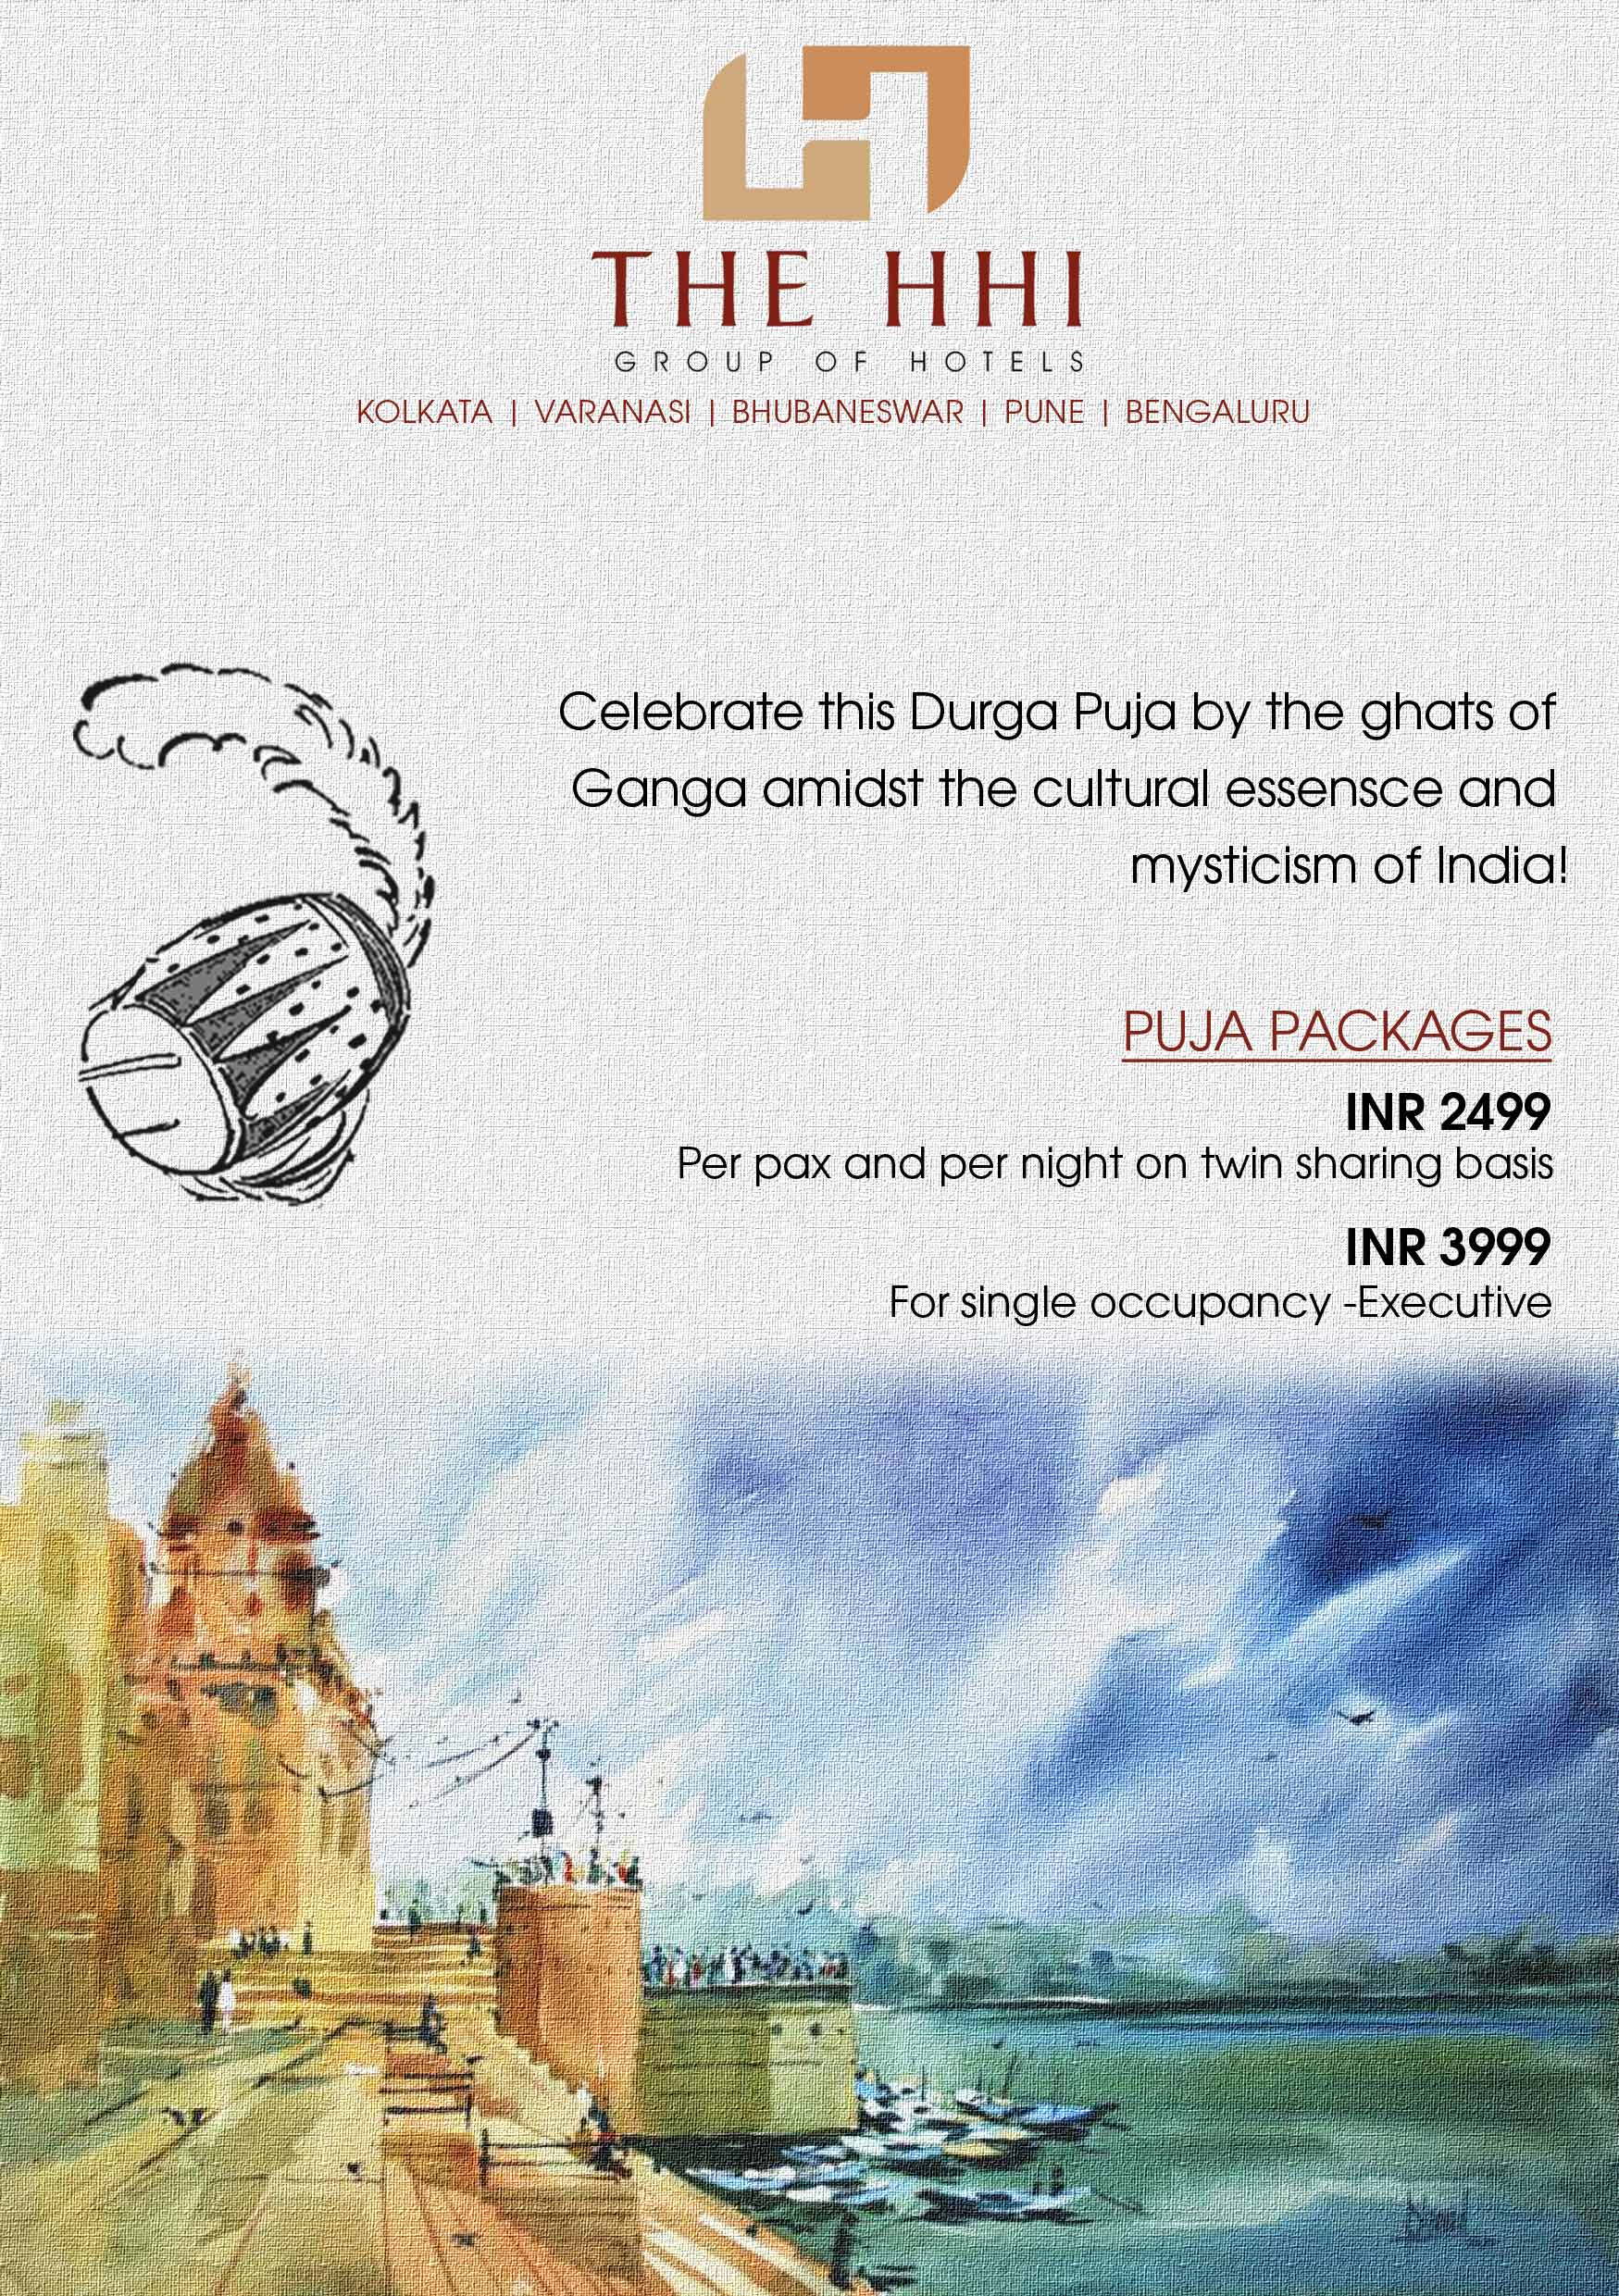 DURGA PUJA OFFER